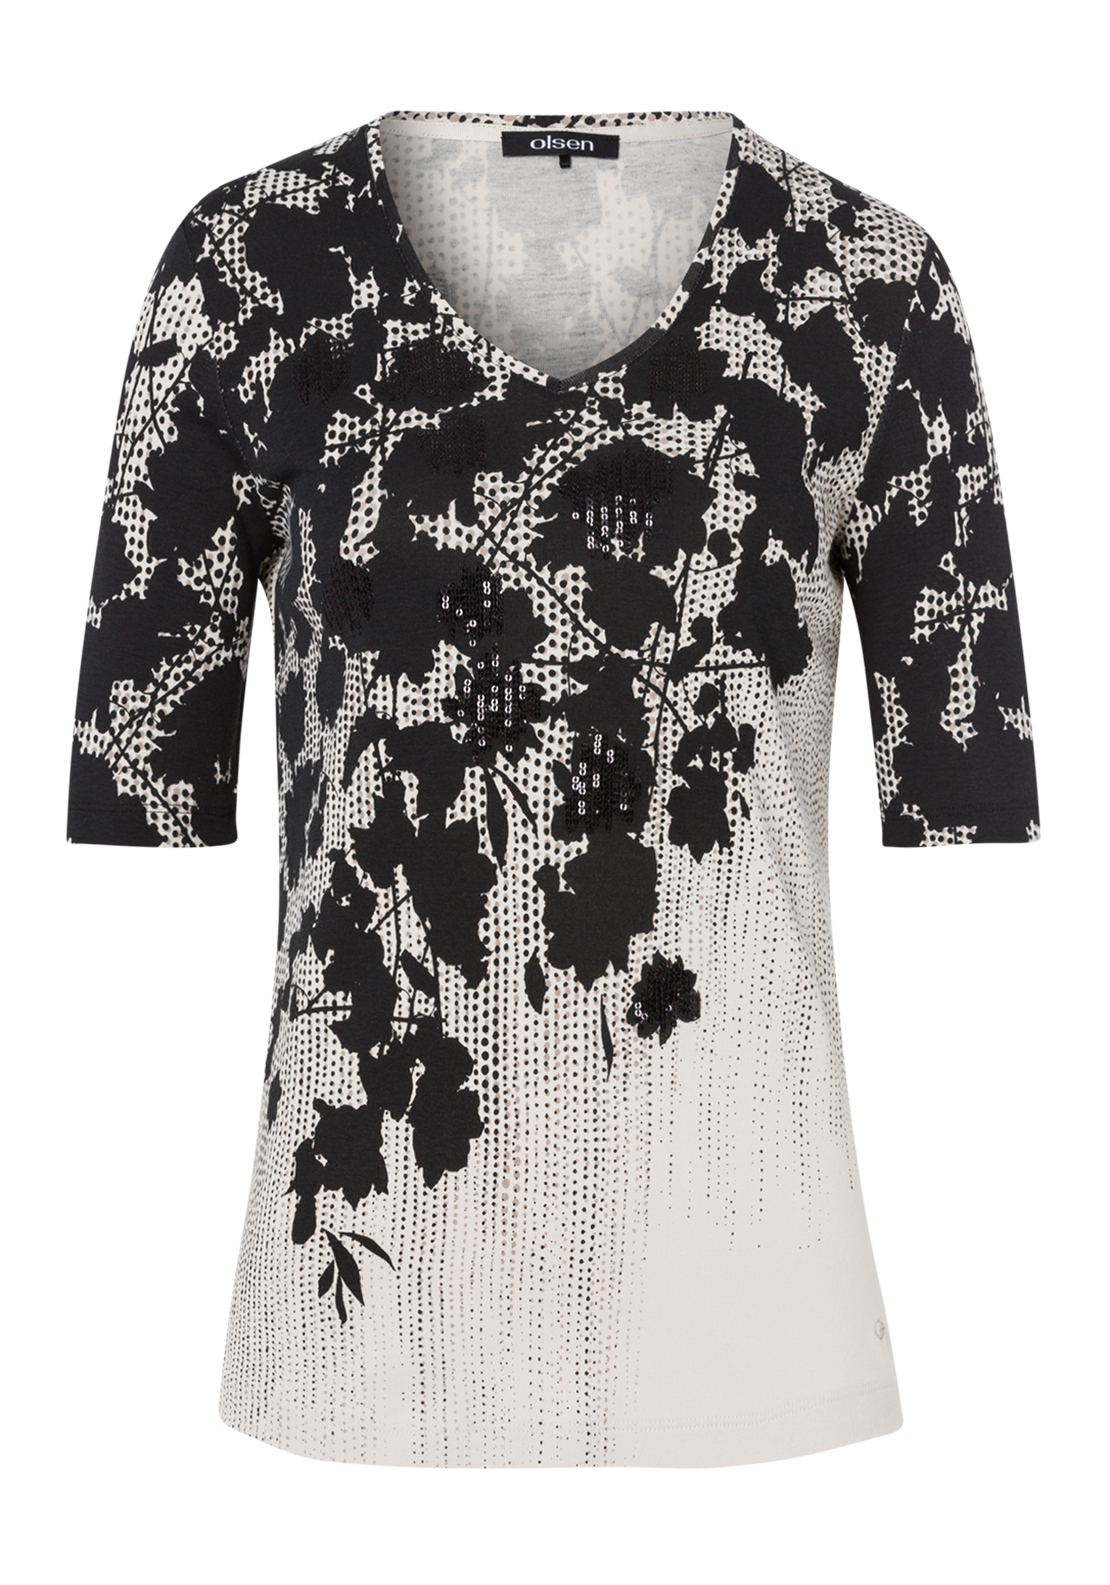 Olsen Sequin Embellished Floral Print Short Sleeve T-Shirt, Black Multi